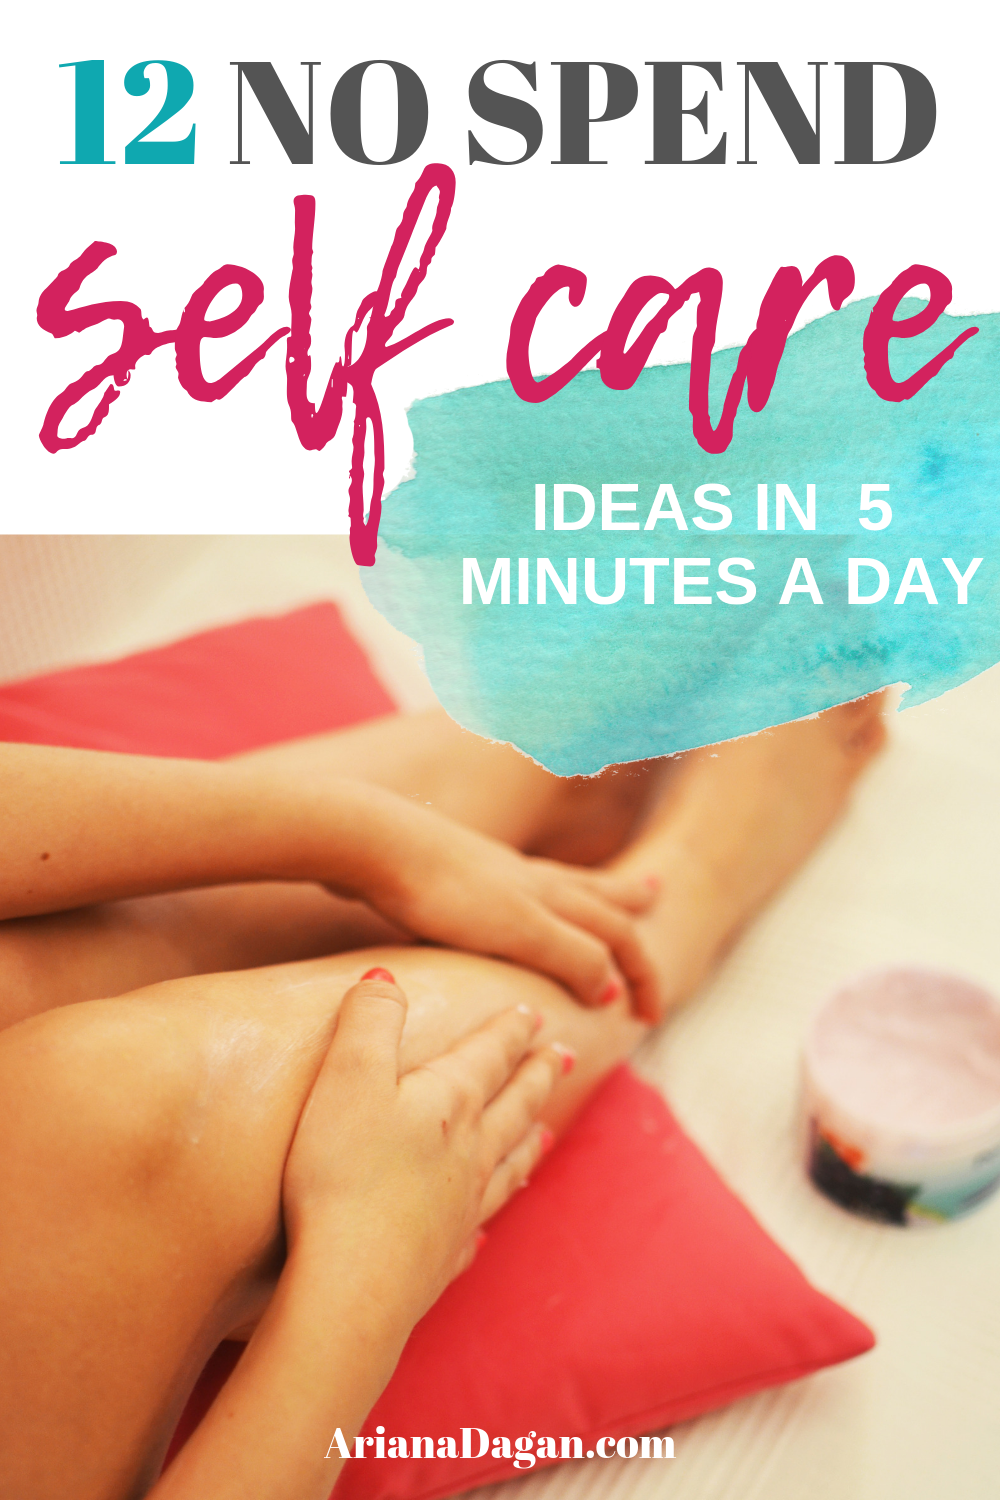 12+ NO SPEND Daily Self Care Ideas in 5 Minutes or Less